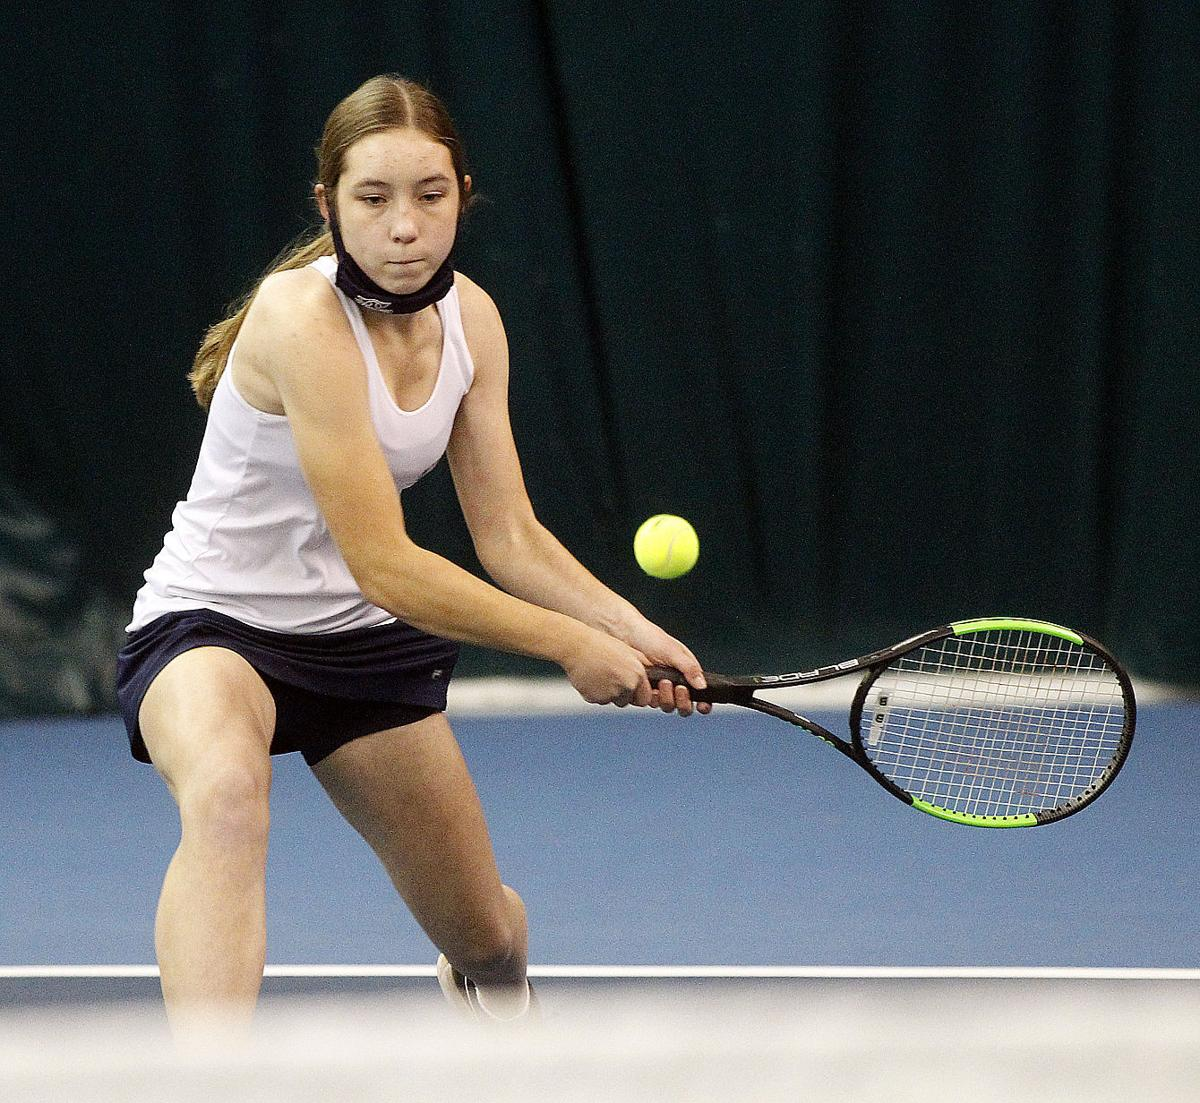 Girls Tennis East Rochester Takes Class C1 Title Over Mynderse Sports Fltimes Com Josh herdman is set to take on his second mma fight in preparation for a filmcredit: girls tennis east rochester takes